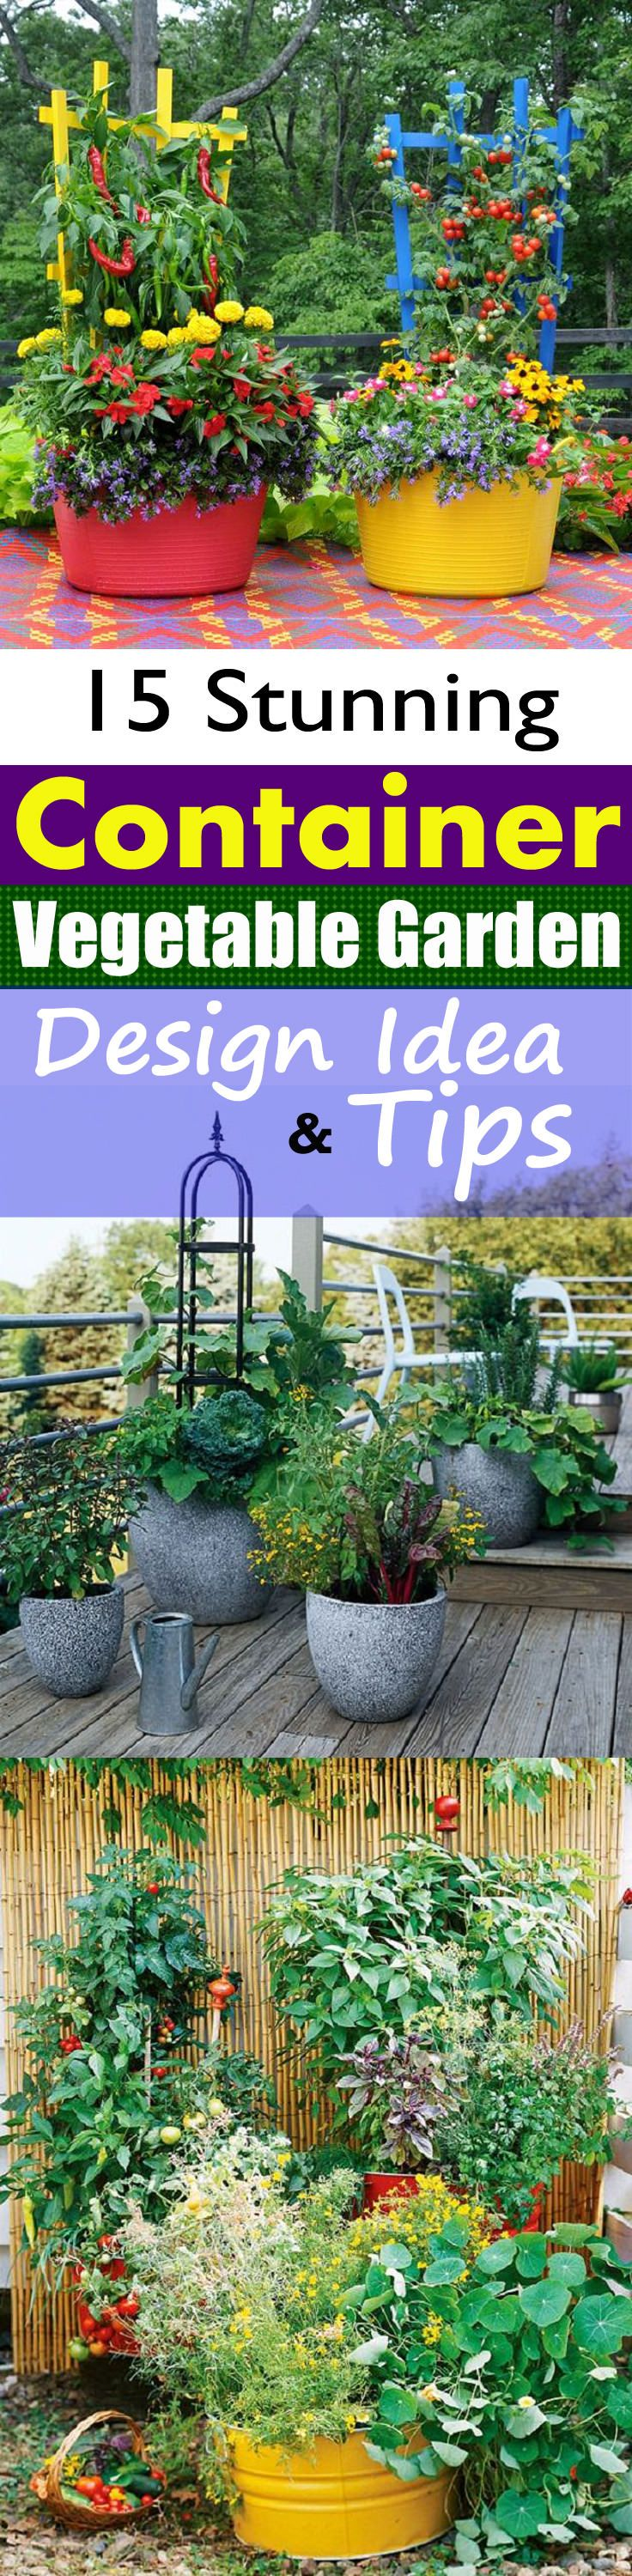 15 stunning container vegetable garden design ideas u0026 tips